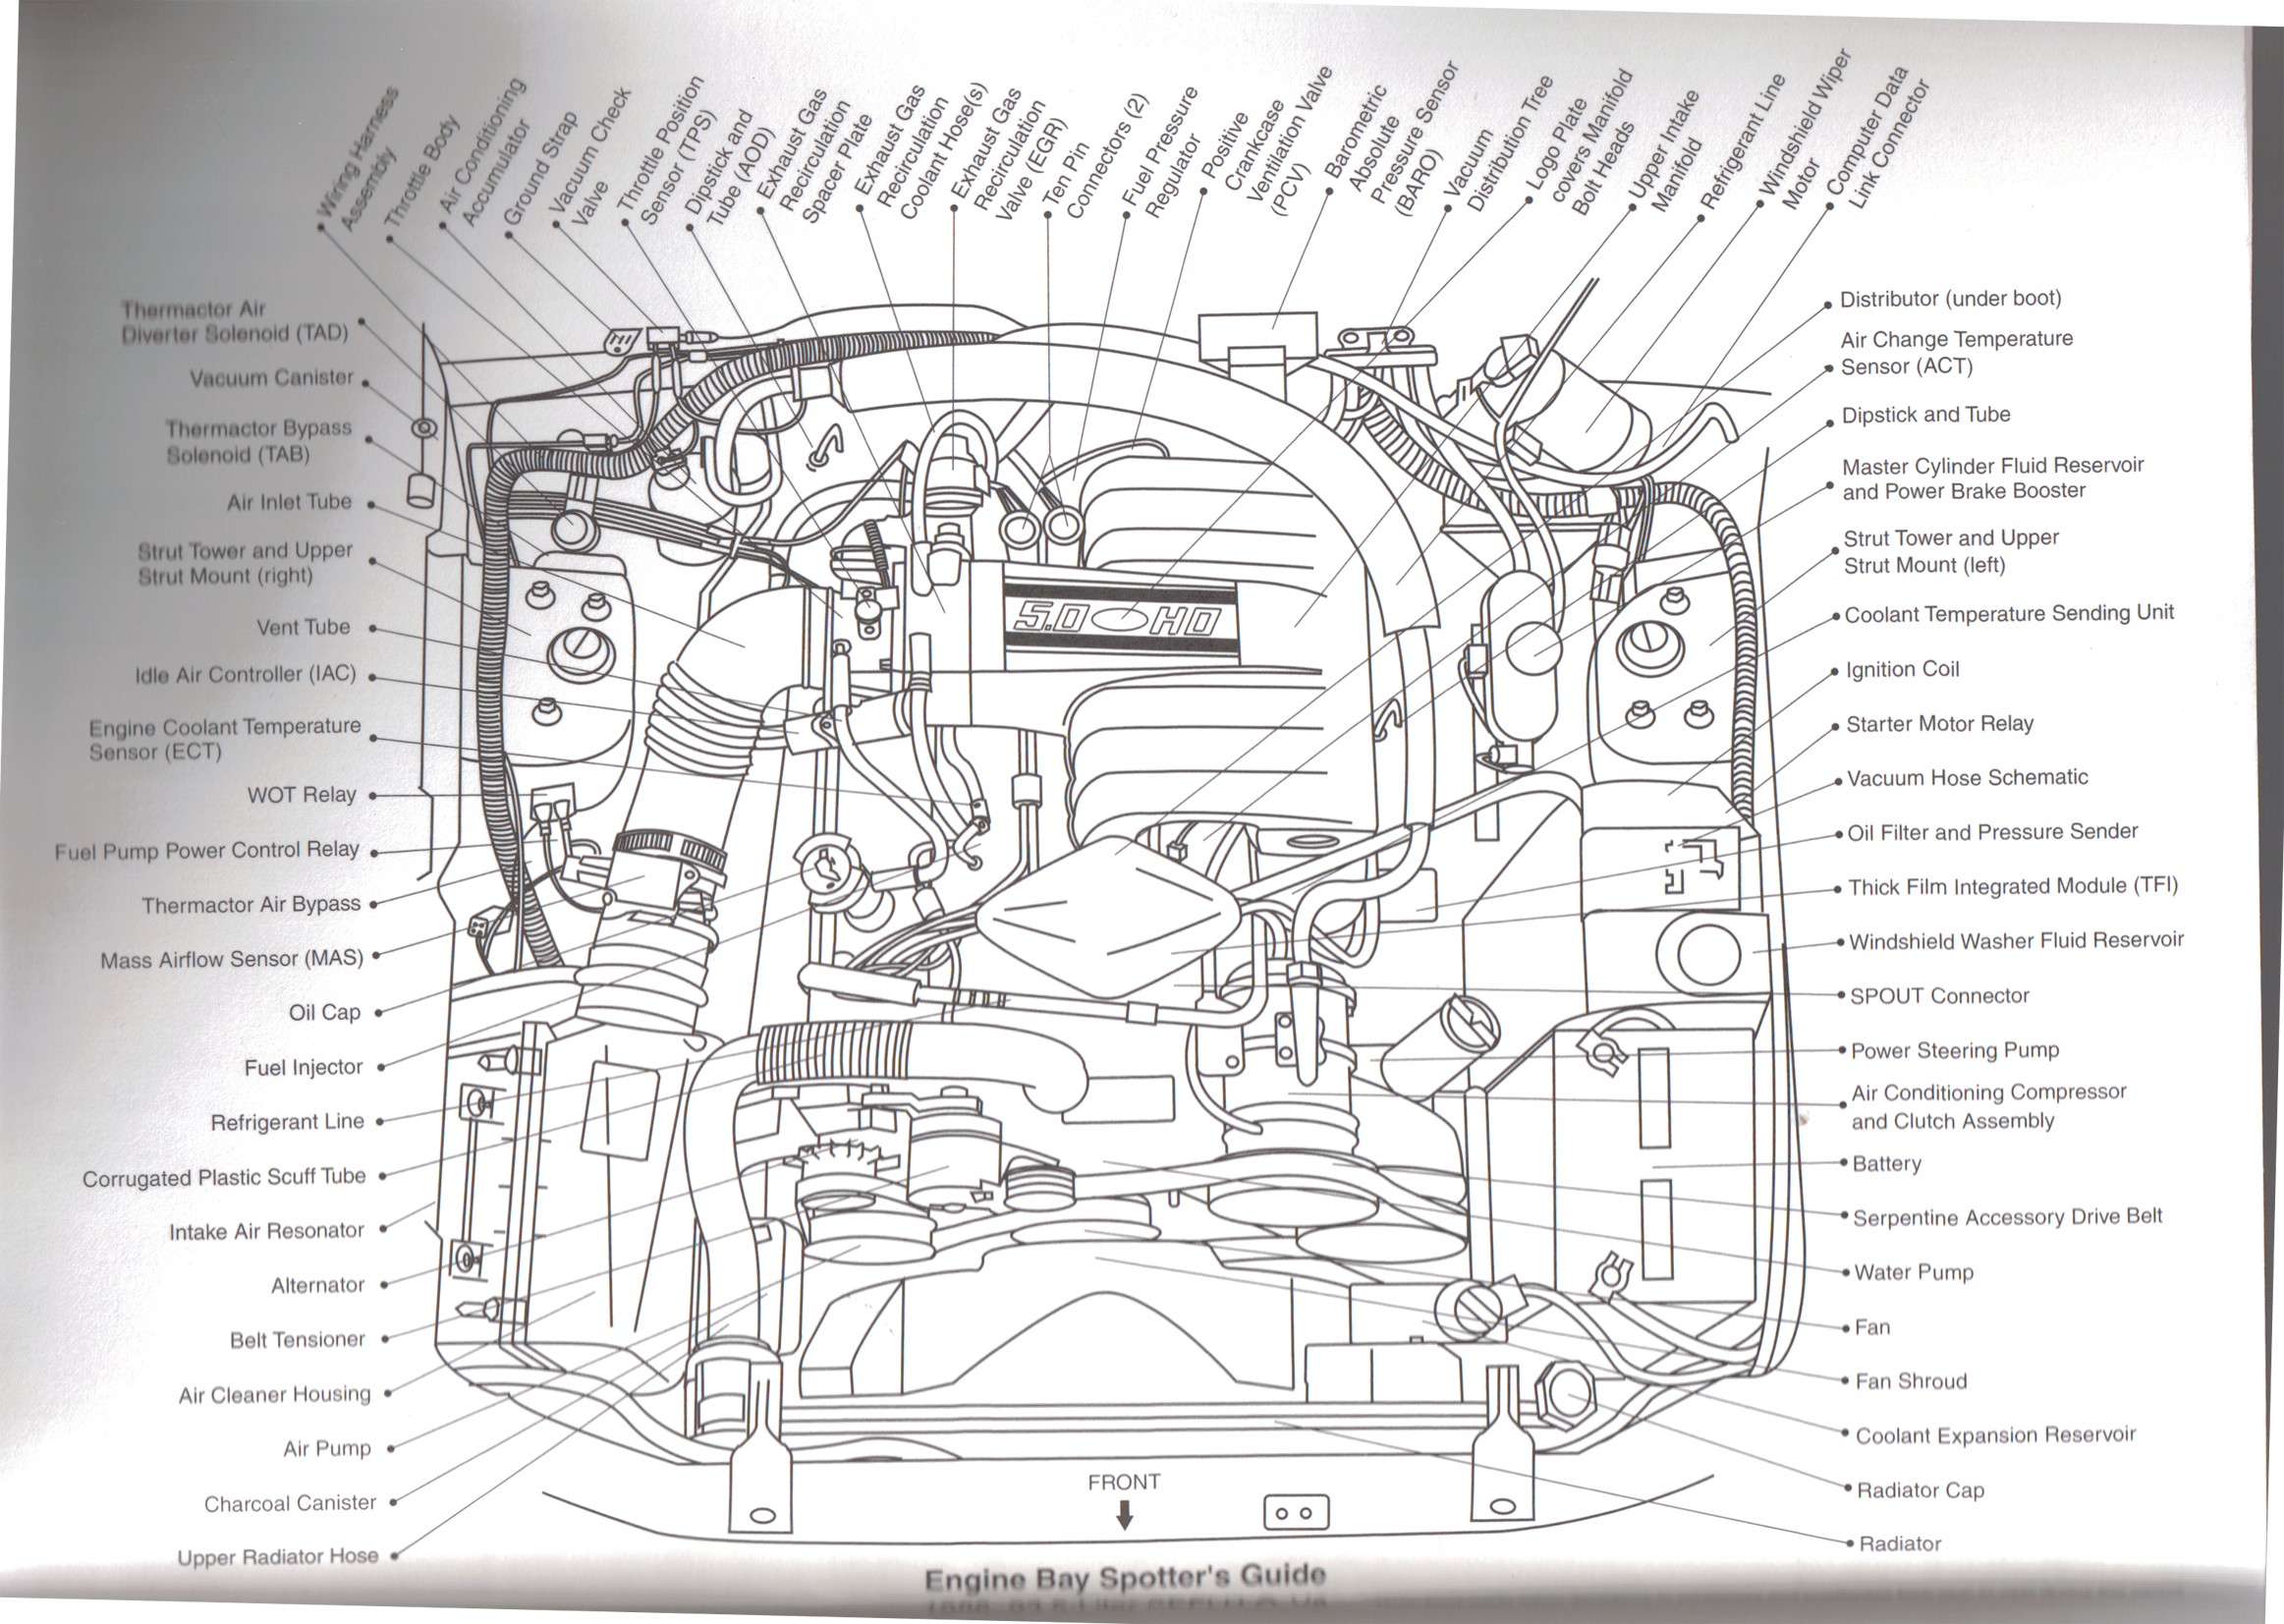 DIAGRAM] 1990 5 0 Engine Diagram FULL Version HD Quality Engine Diagram -  SCATTERDIAGRAM.MINIERACAVEDELPREDIL.IT | 1979 V8 Ford Engine Diagram |  | scatterdiagram.minieracavedelpredil.it